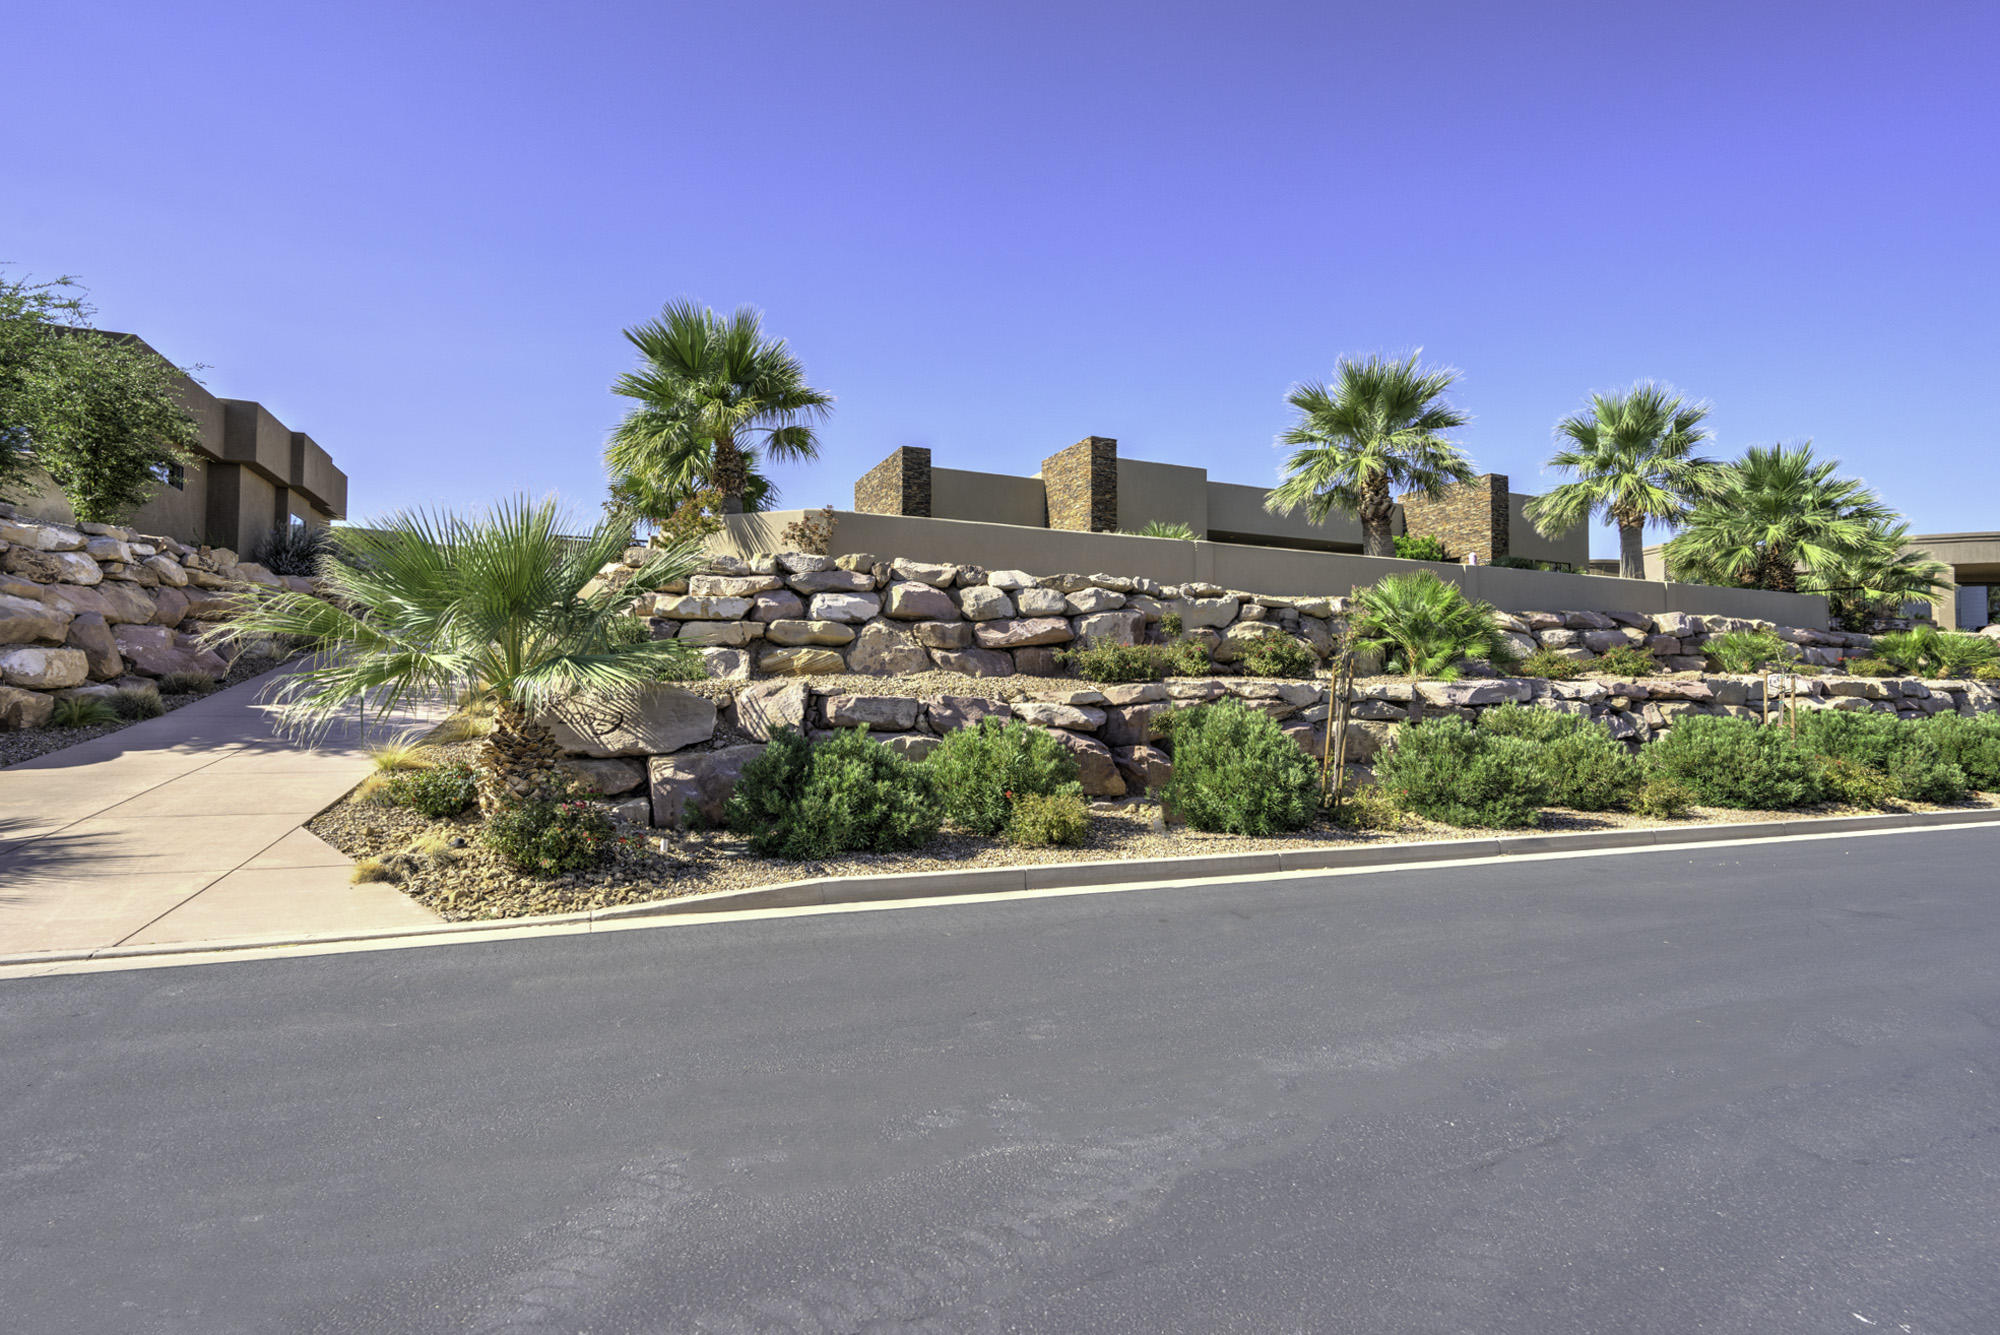 2002 Stone Canyon Dr, St George Ut 84790